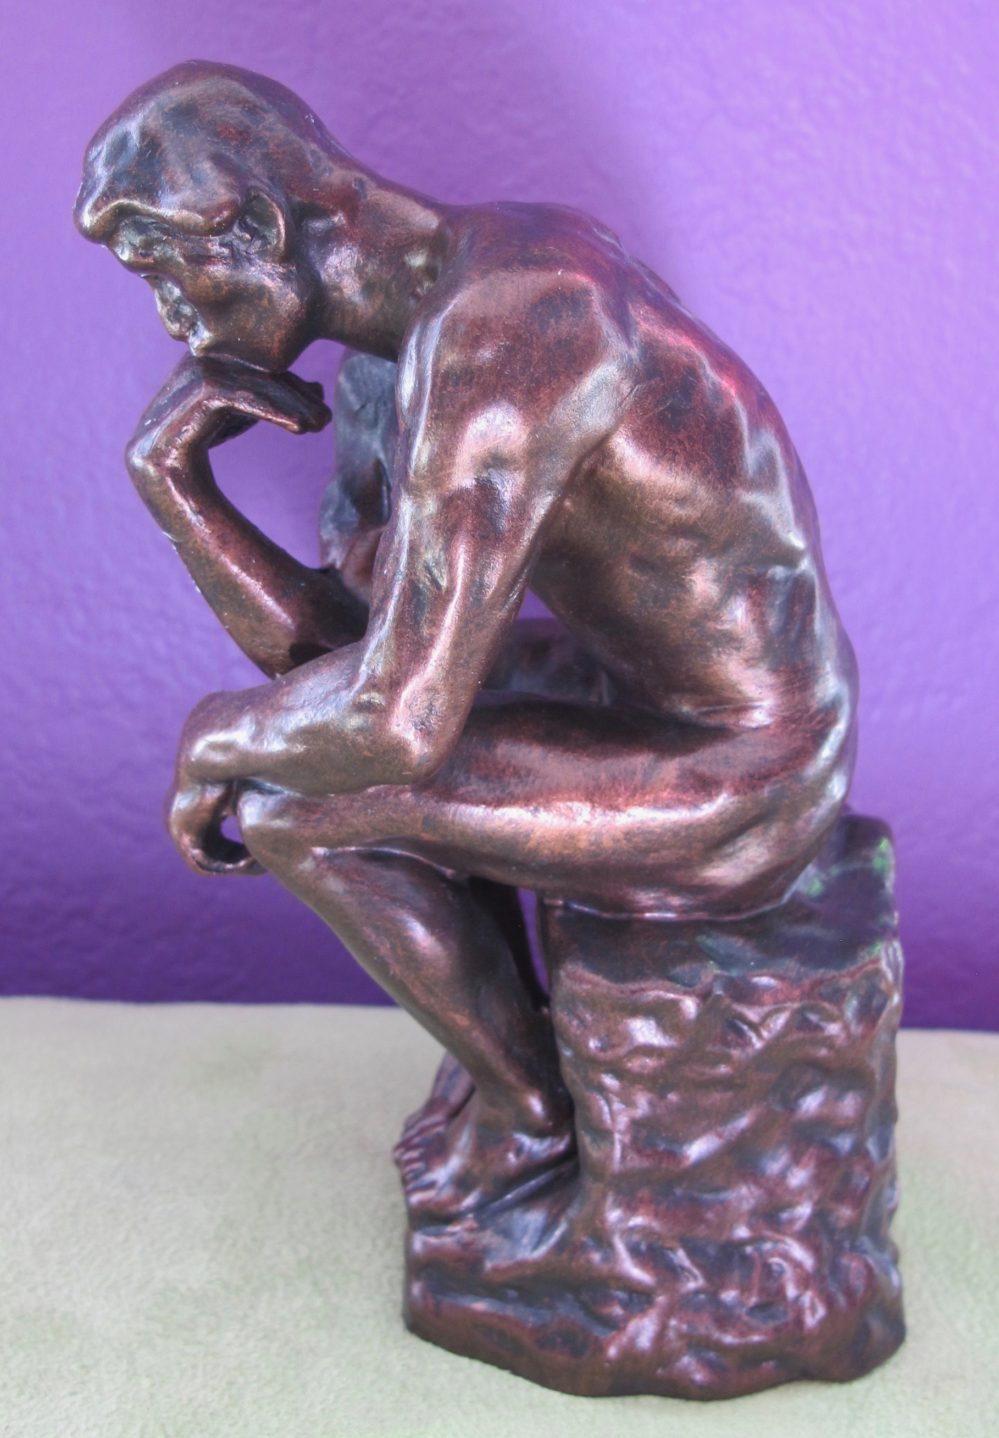 Auguste Rodin THE THINKER Statue Sculpture Figure with Bronze Patina